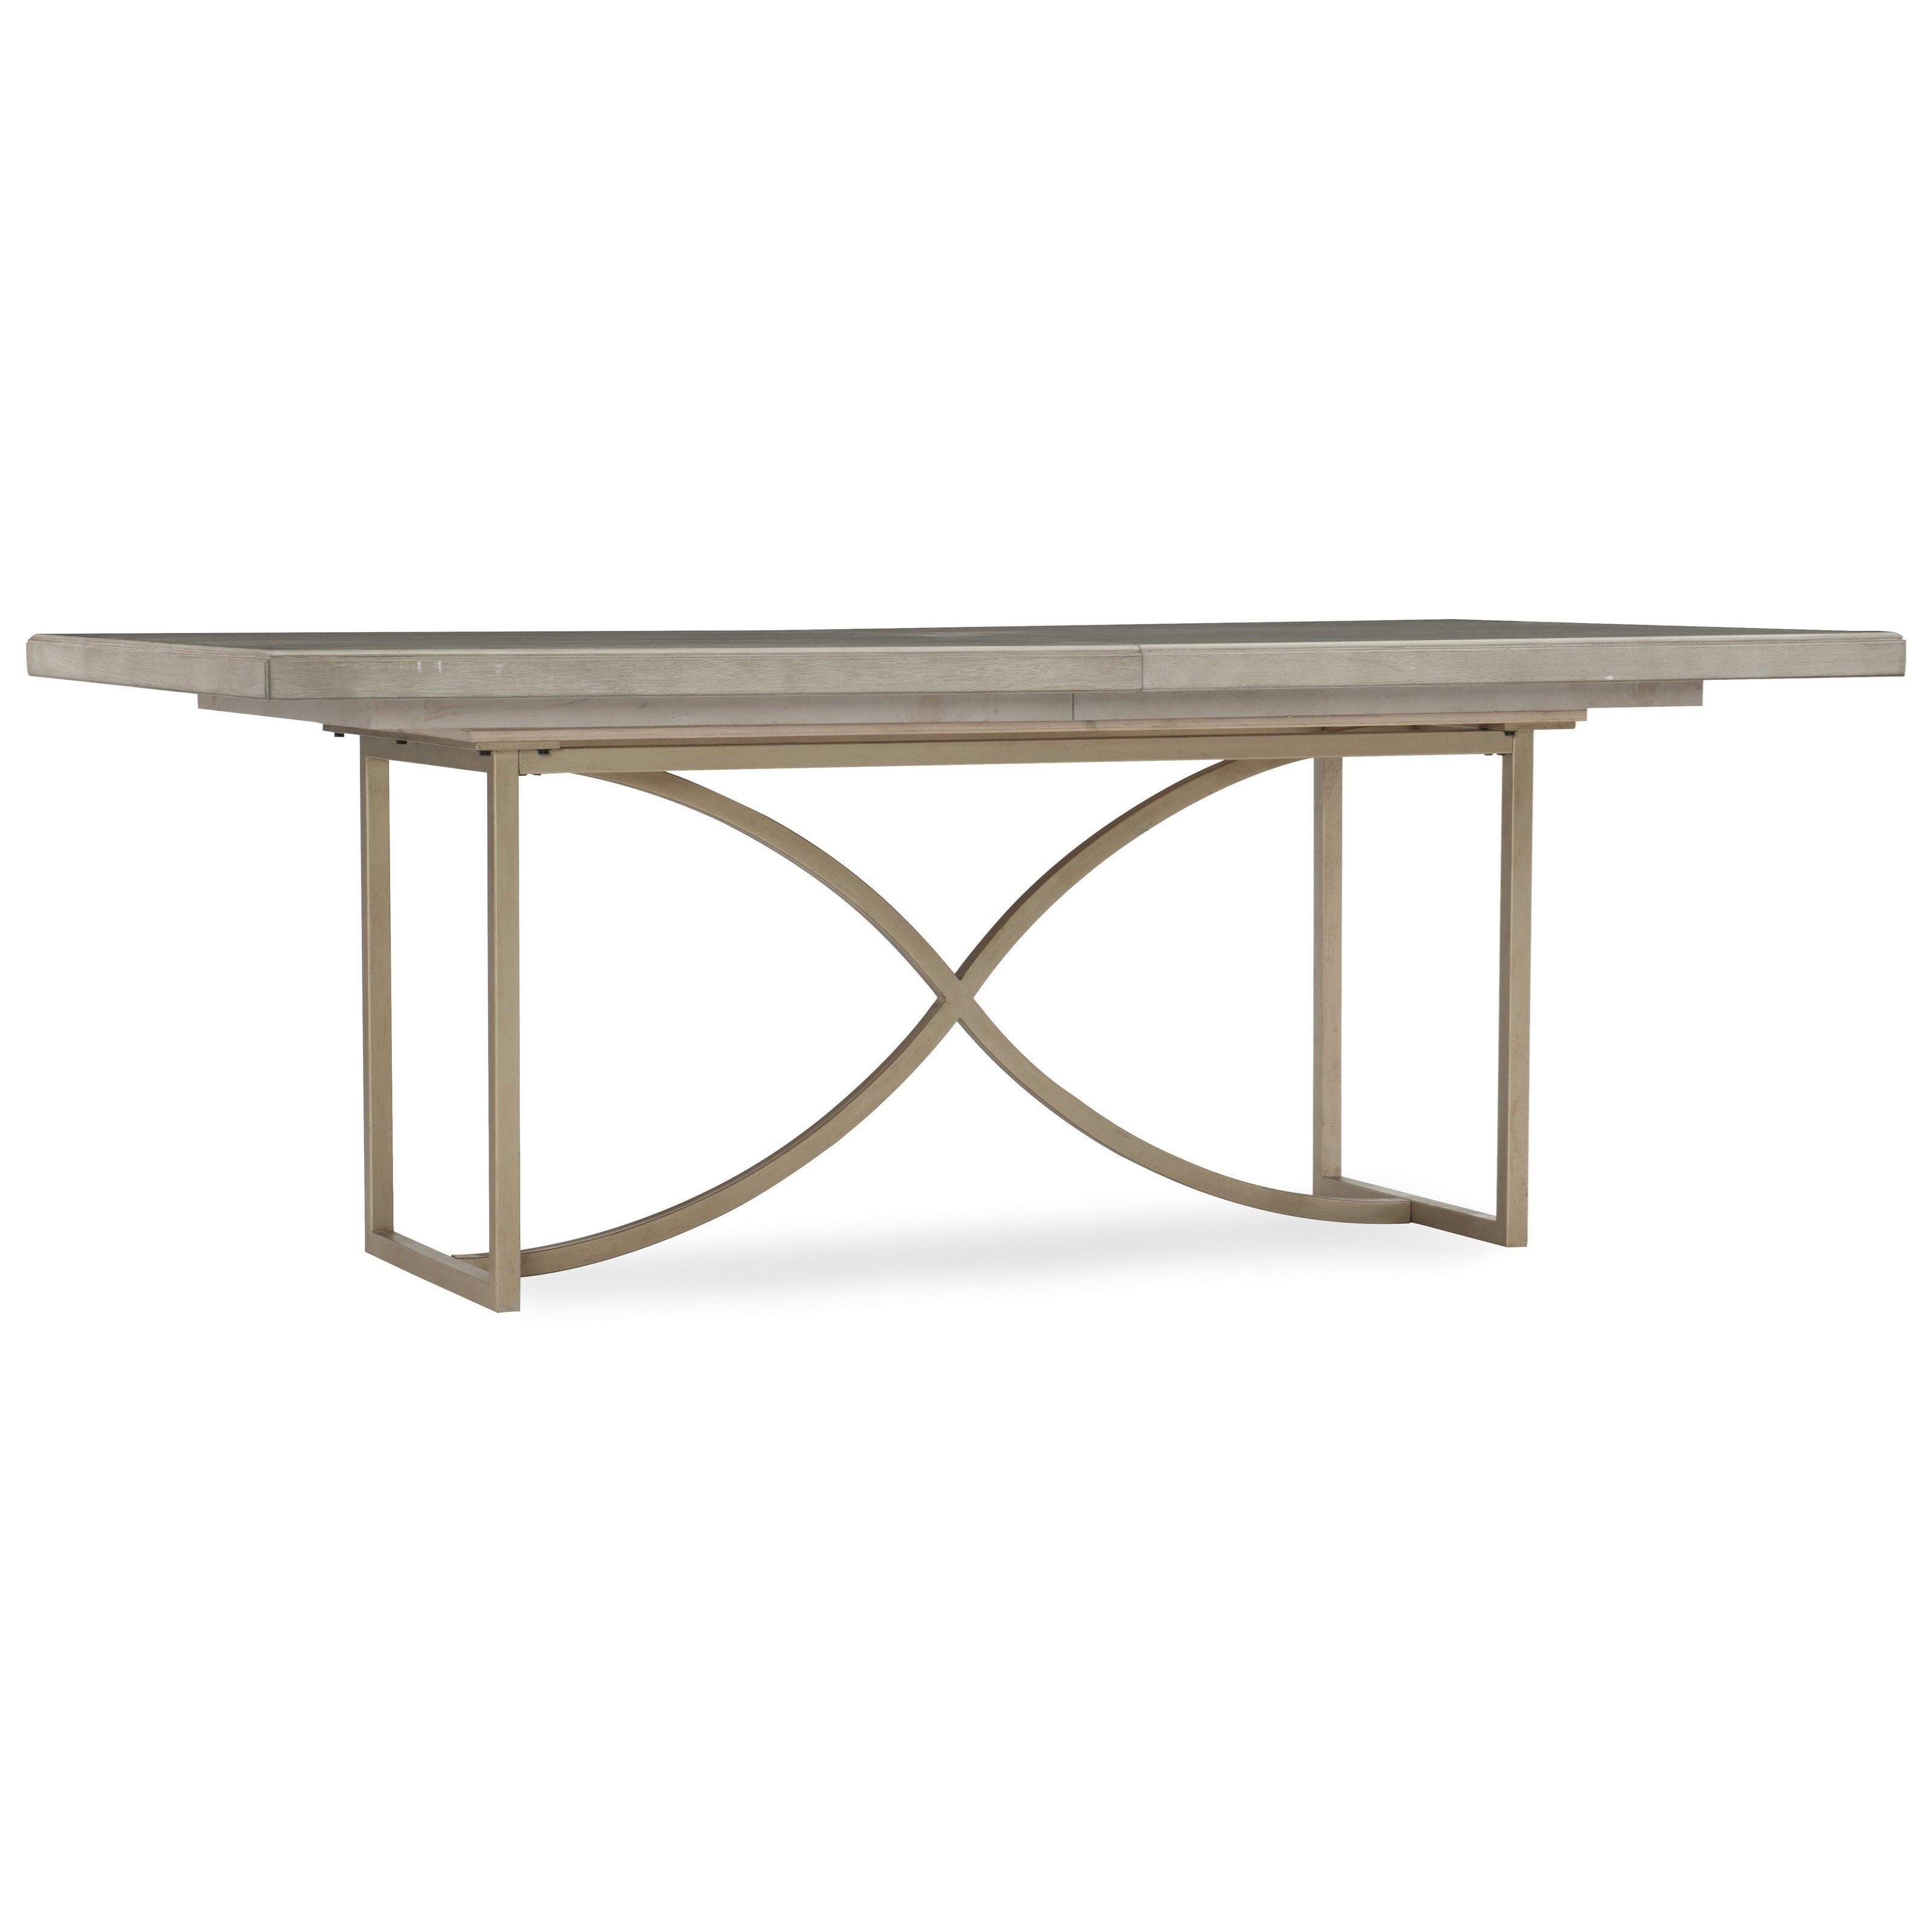 Elixir 80in Rectangular Dining Table with 20in Leaf by Hooker Furniture at Stoney Creek Furniture